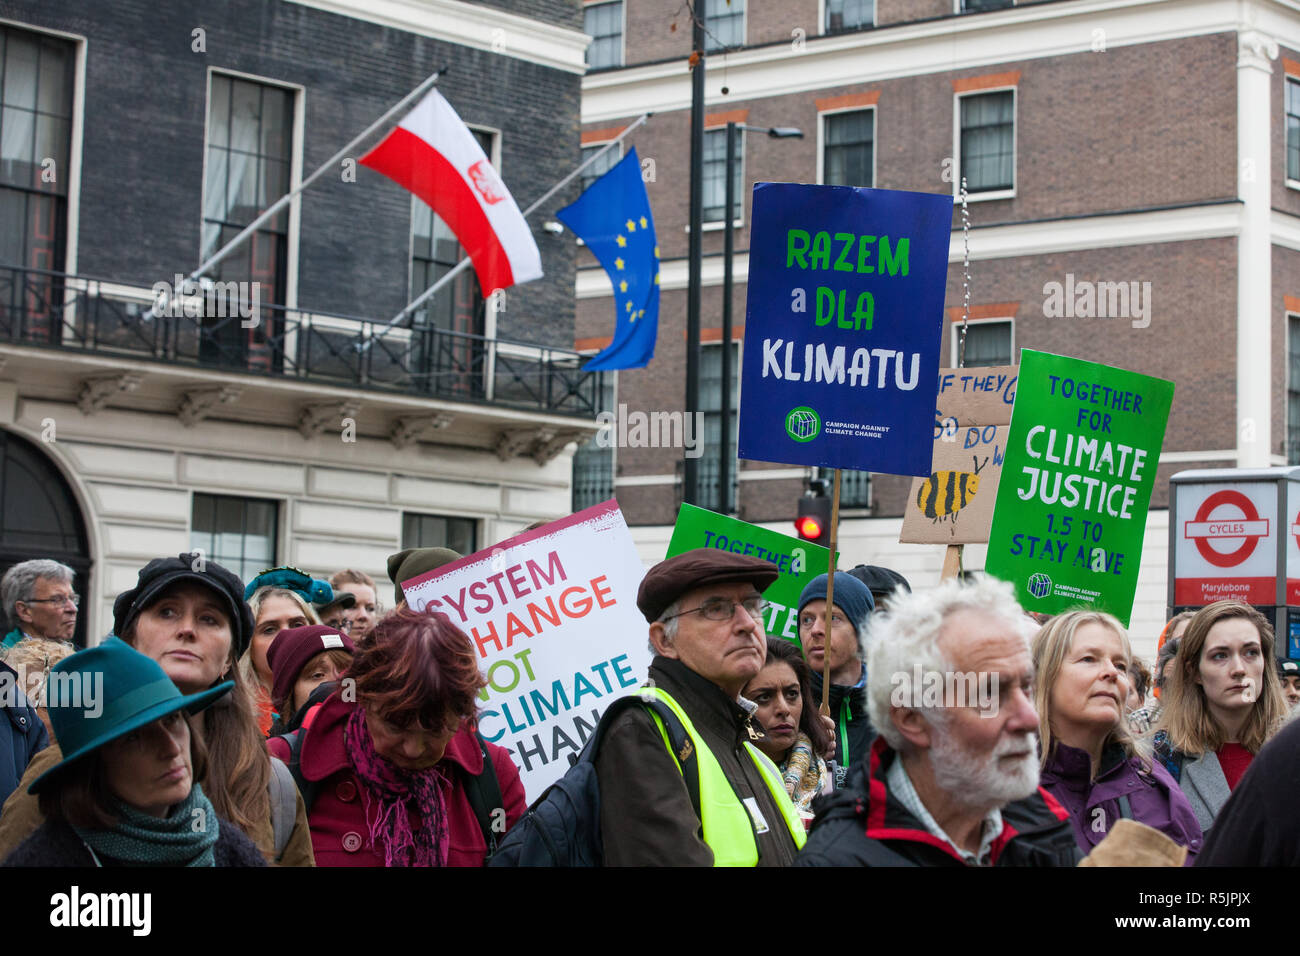 London, UK. 1st December, 2018. A placard bearing a message in Polish is held by environmental campaigners outside the Polish embassy during a Together for Climate Justice demonstration in protest against Government policies in relation to climate change, including Heathrow expansion and fracking. Following a rally outside the Polish embassy, chosen to highlight the UN's Katowice Climate Change Conference which begins tomorrow, protesters marched to Downing Street. Credit: Mark Kerrison/Alamy Live News Stock Photo